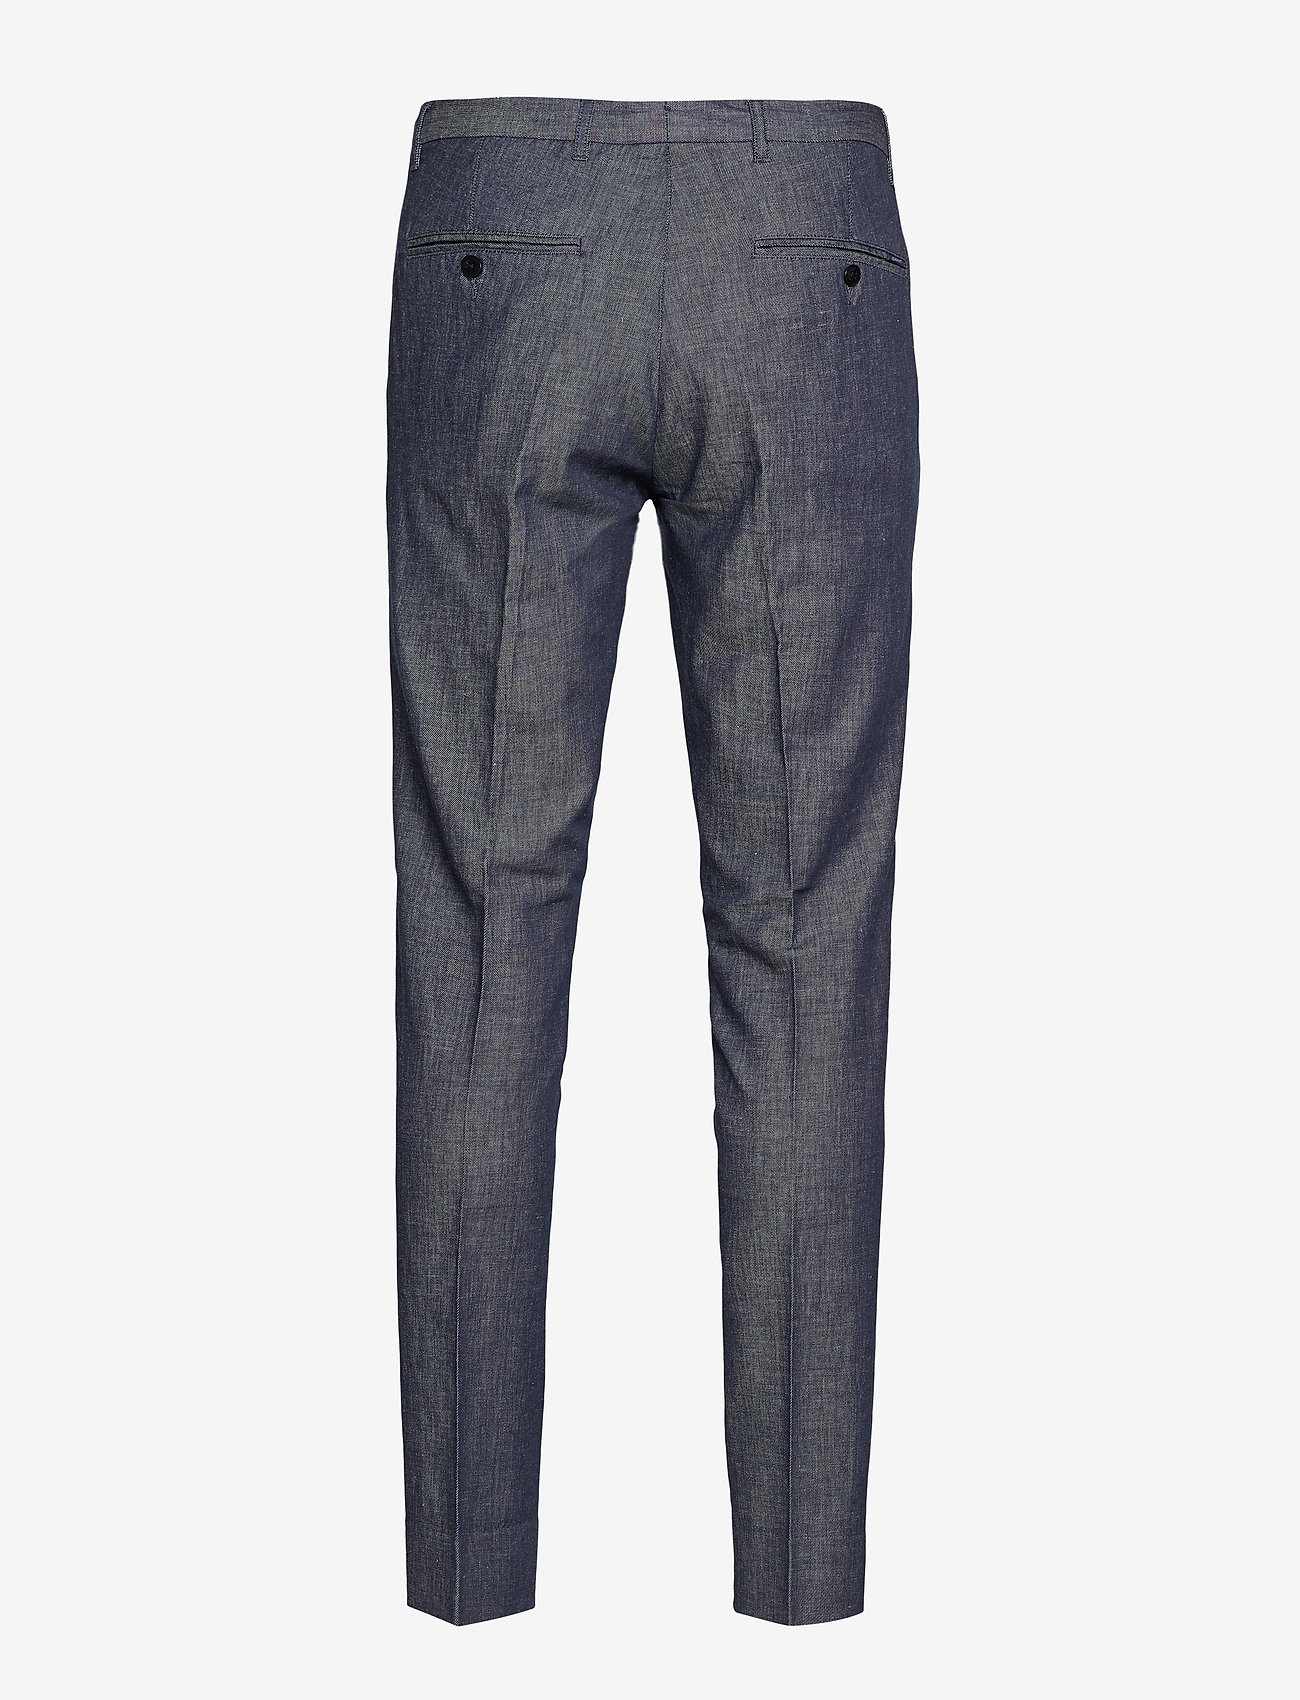 Gant D1. The Chambray Slack - Trousers